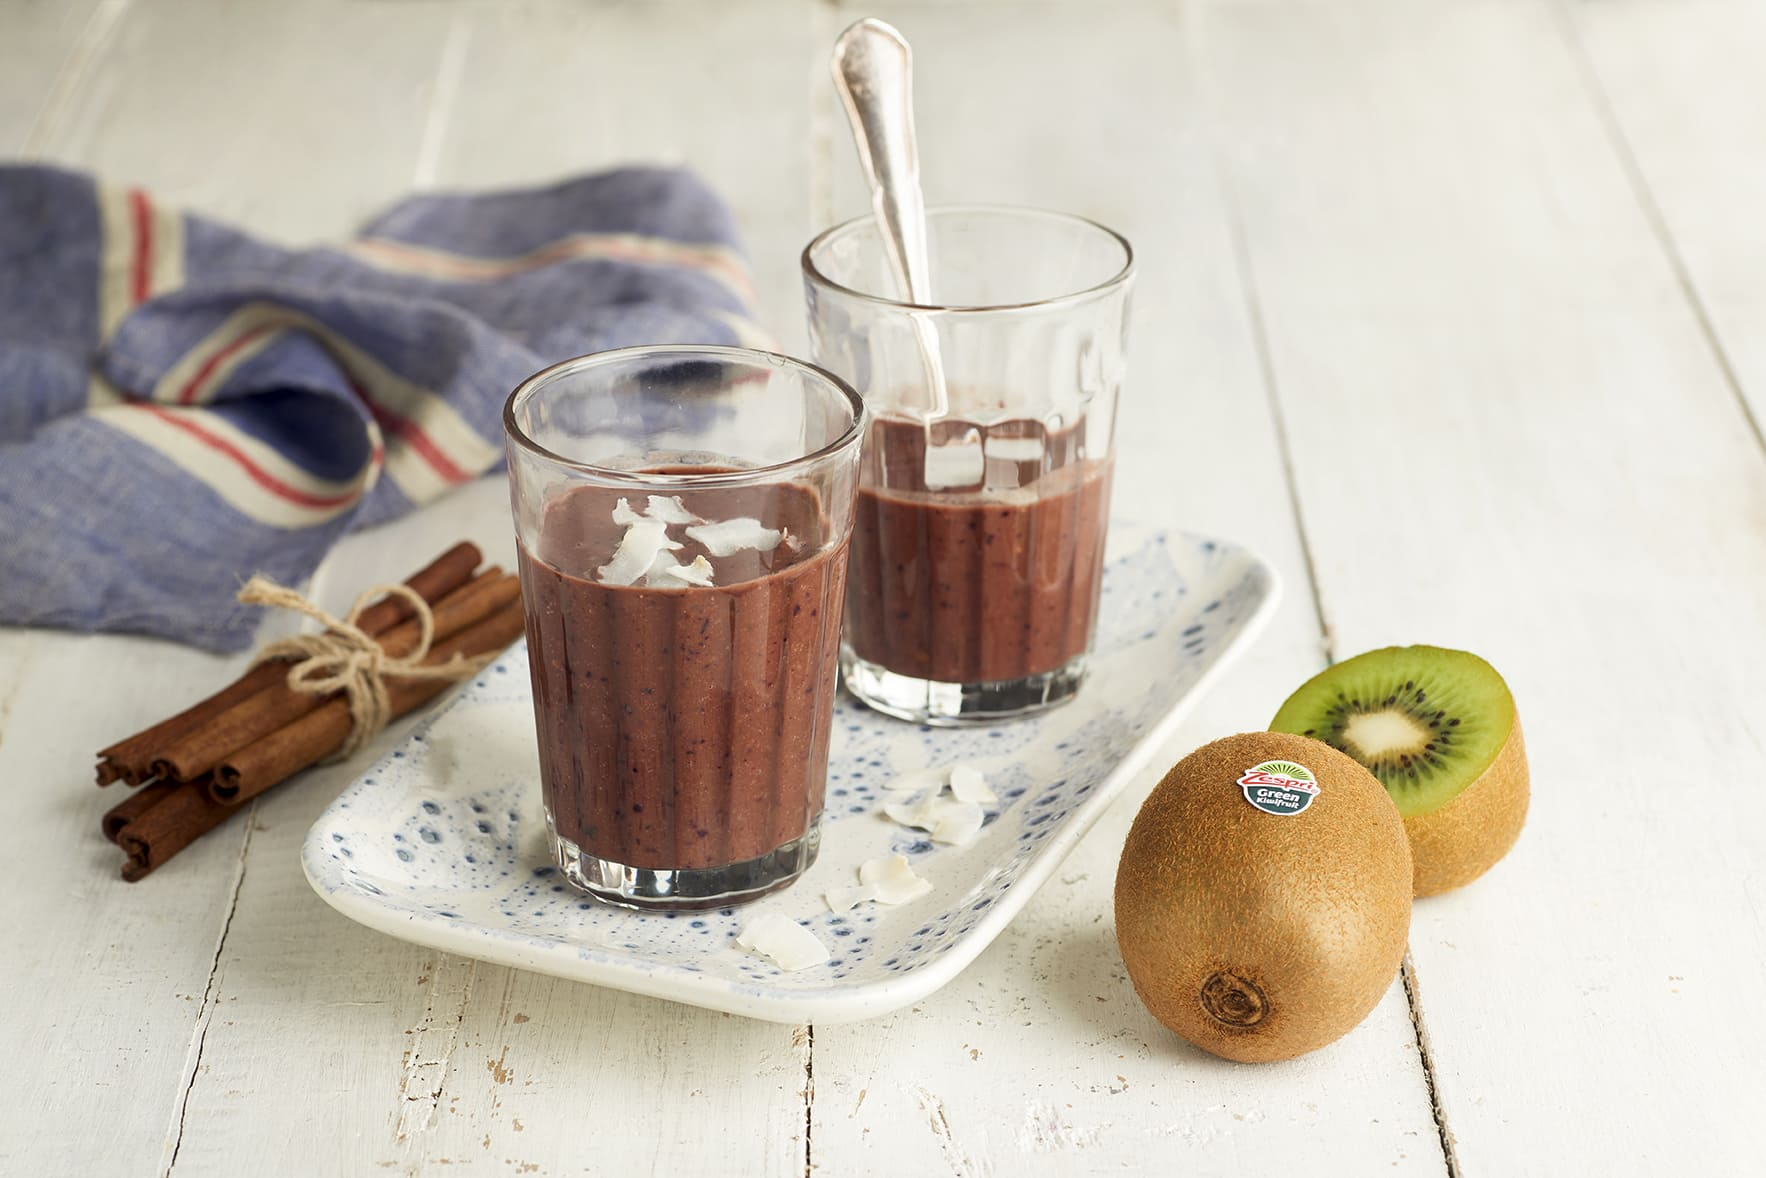 week4_Chocolate kiwifruit smoothie04.jpg